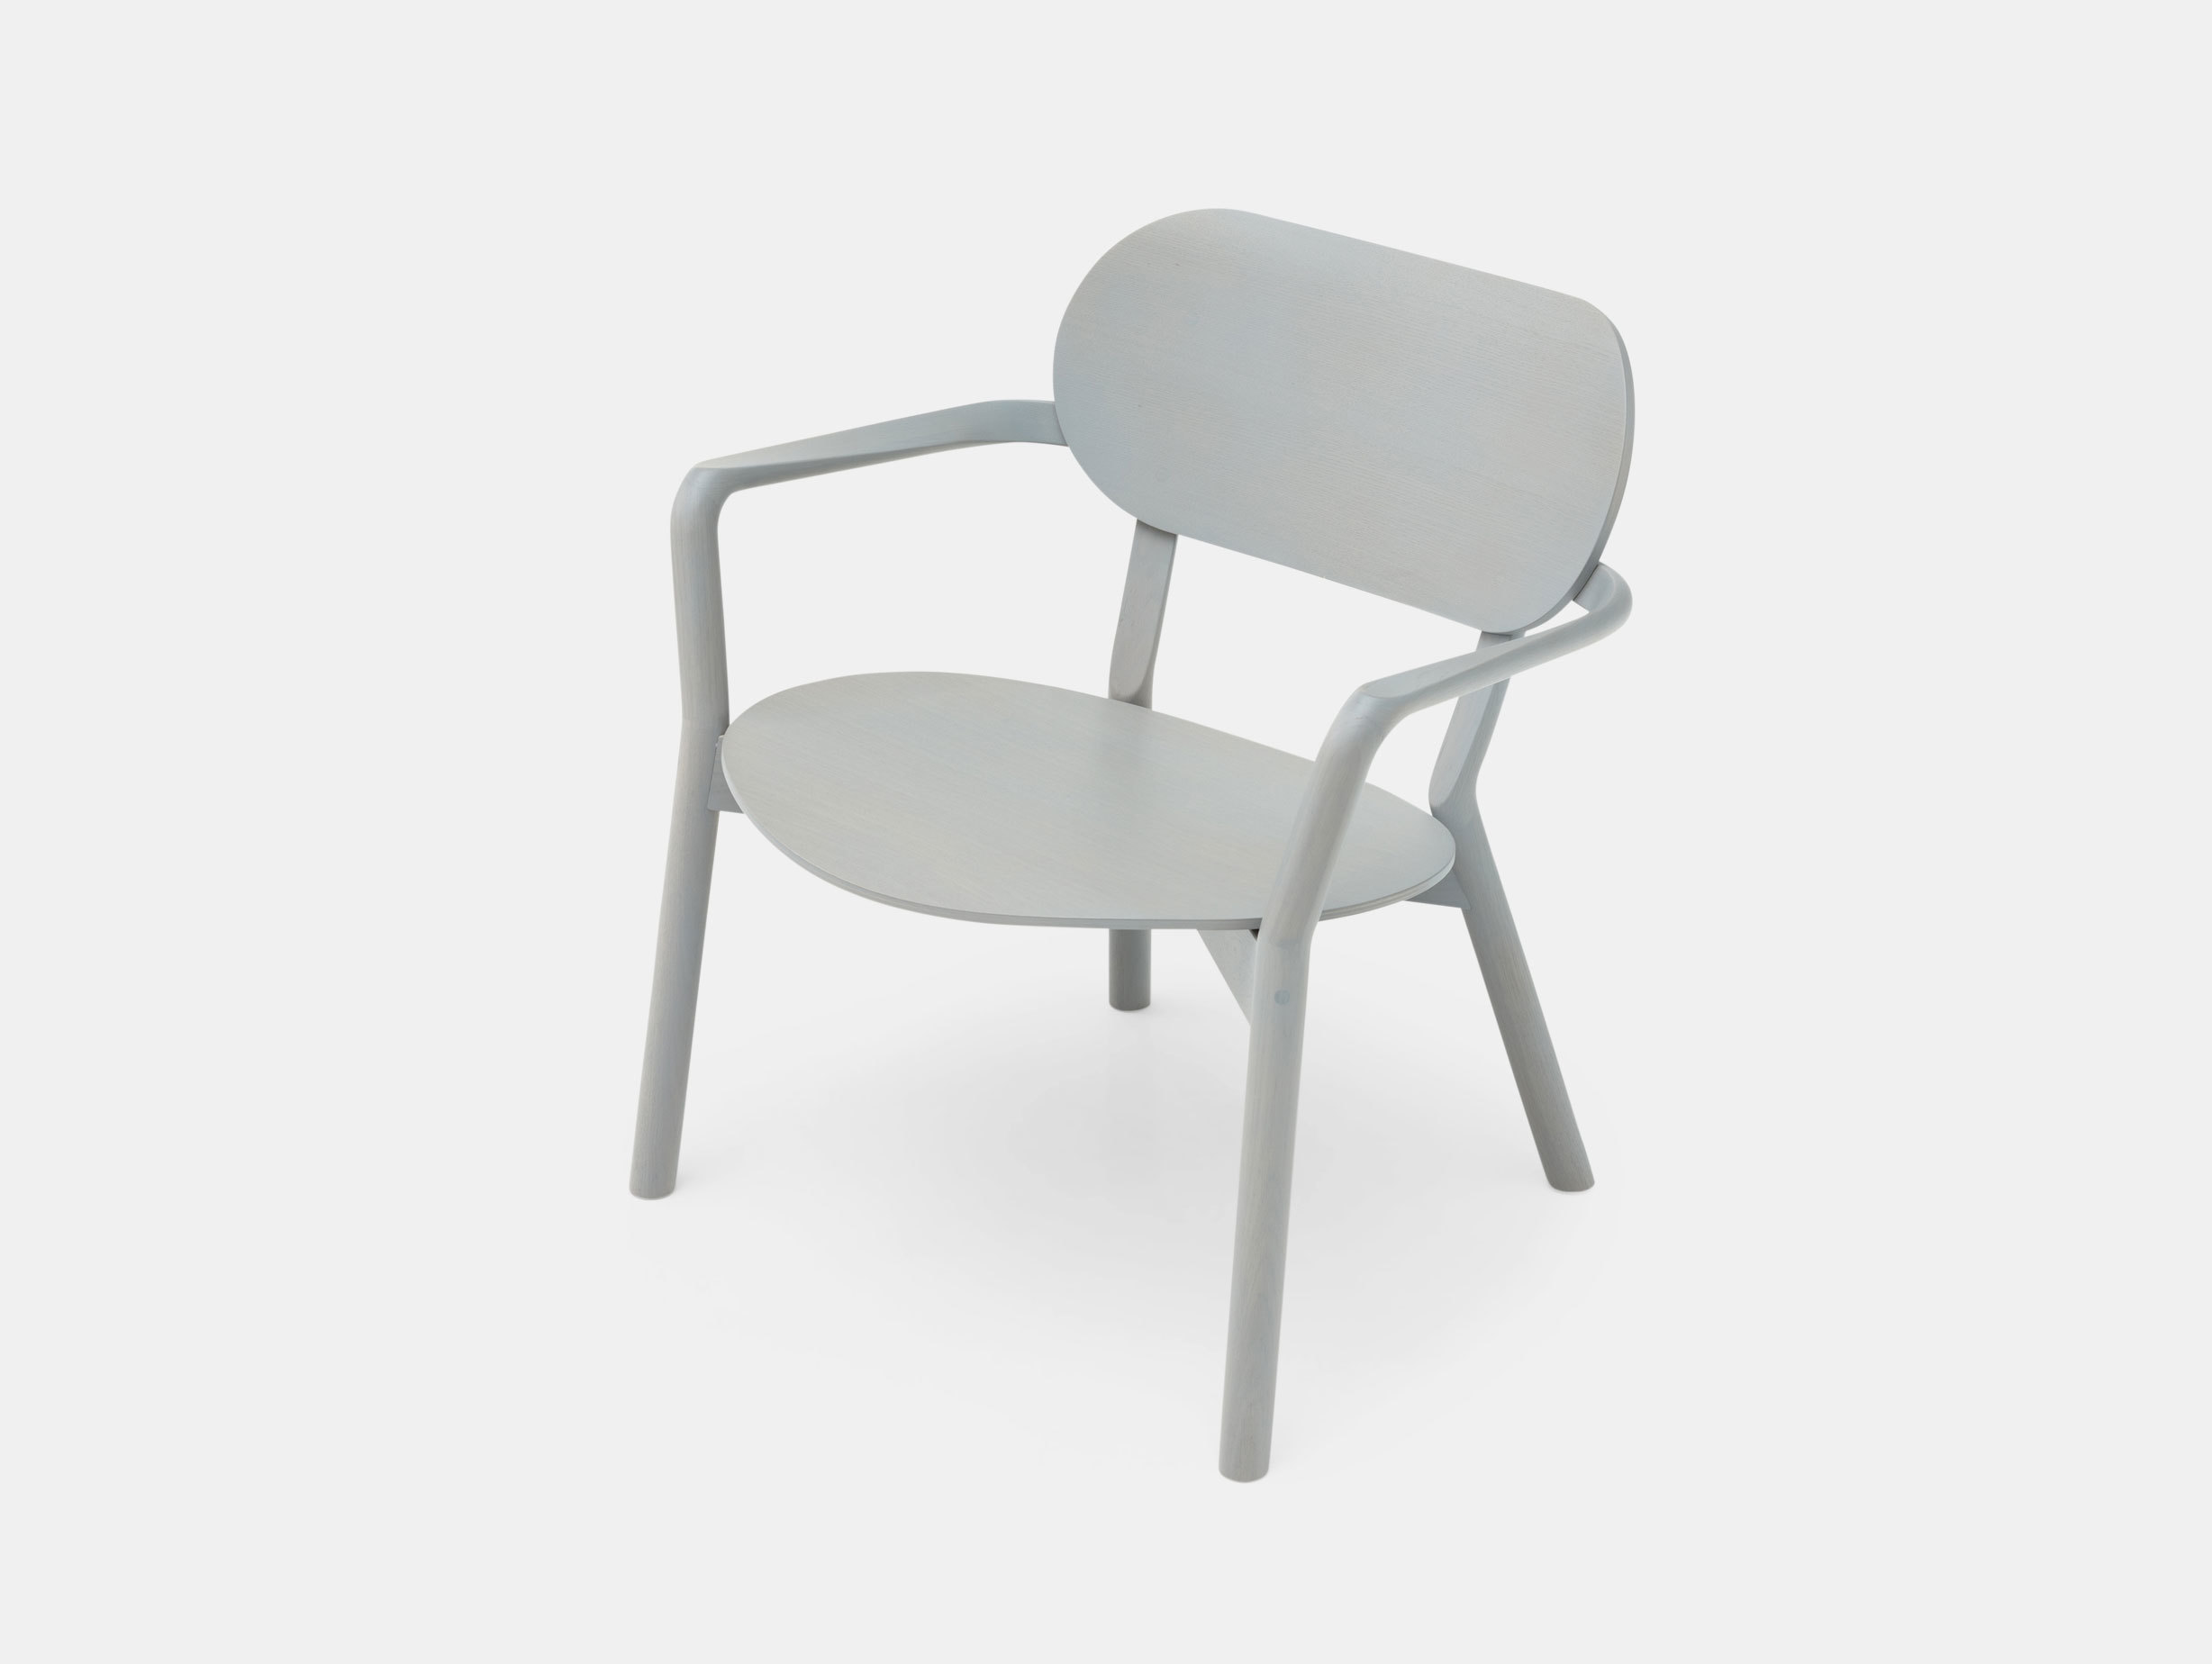 Castor Low Chair image 2